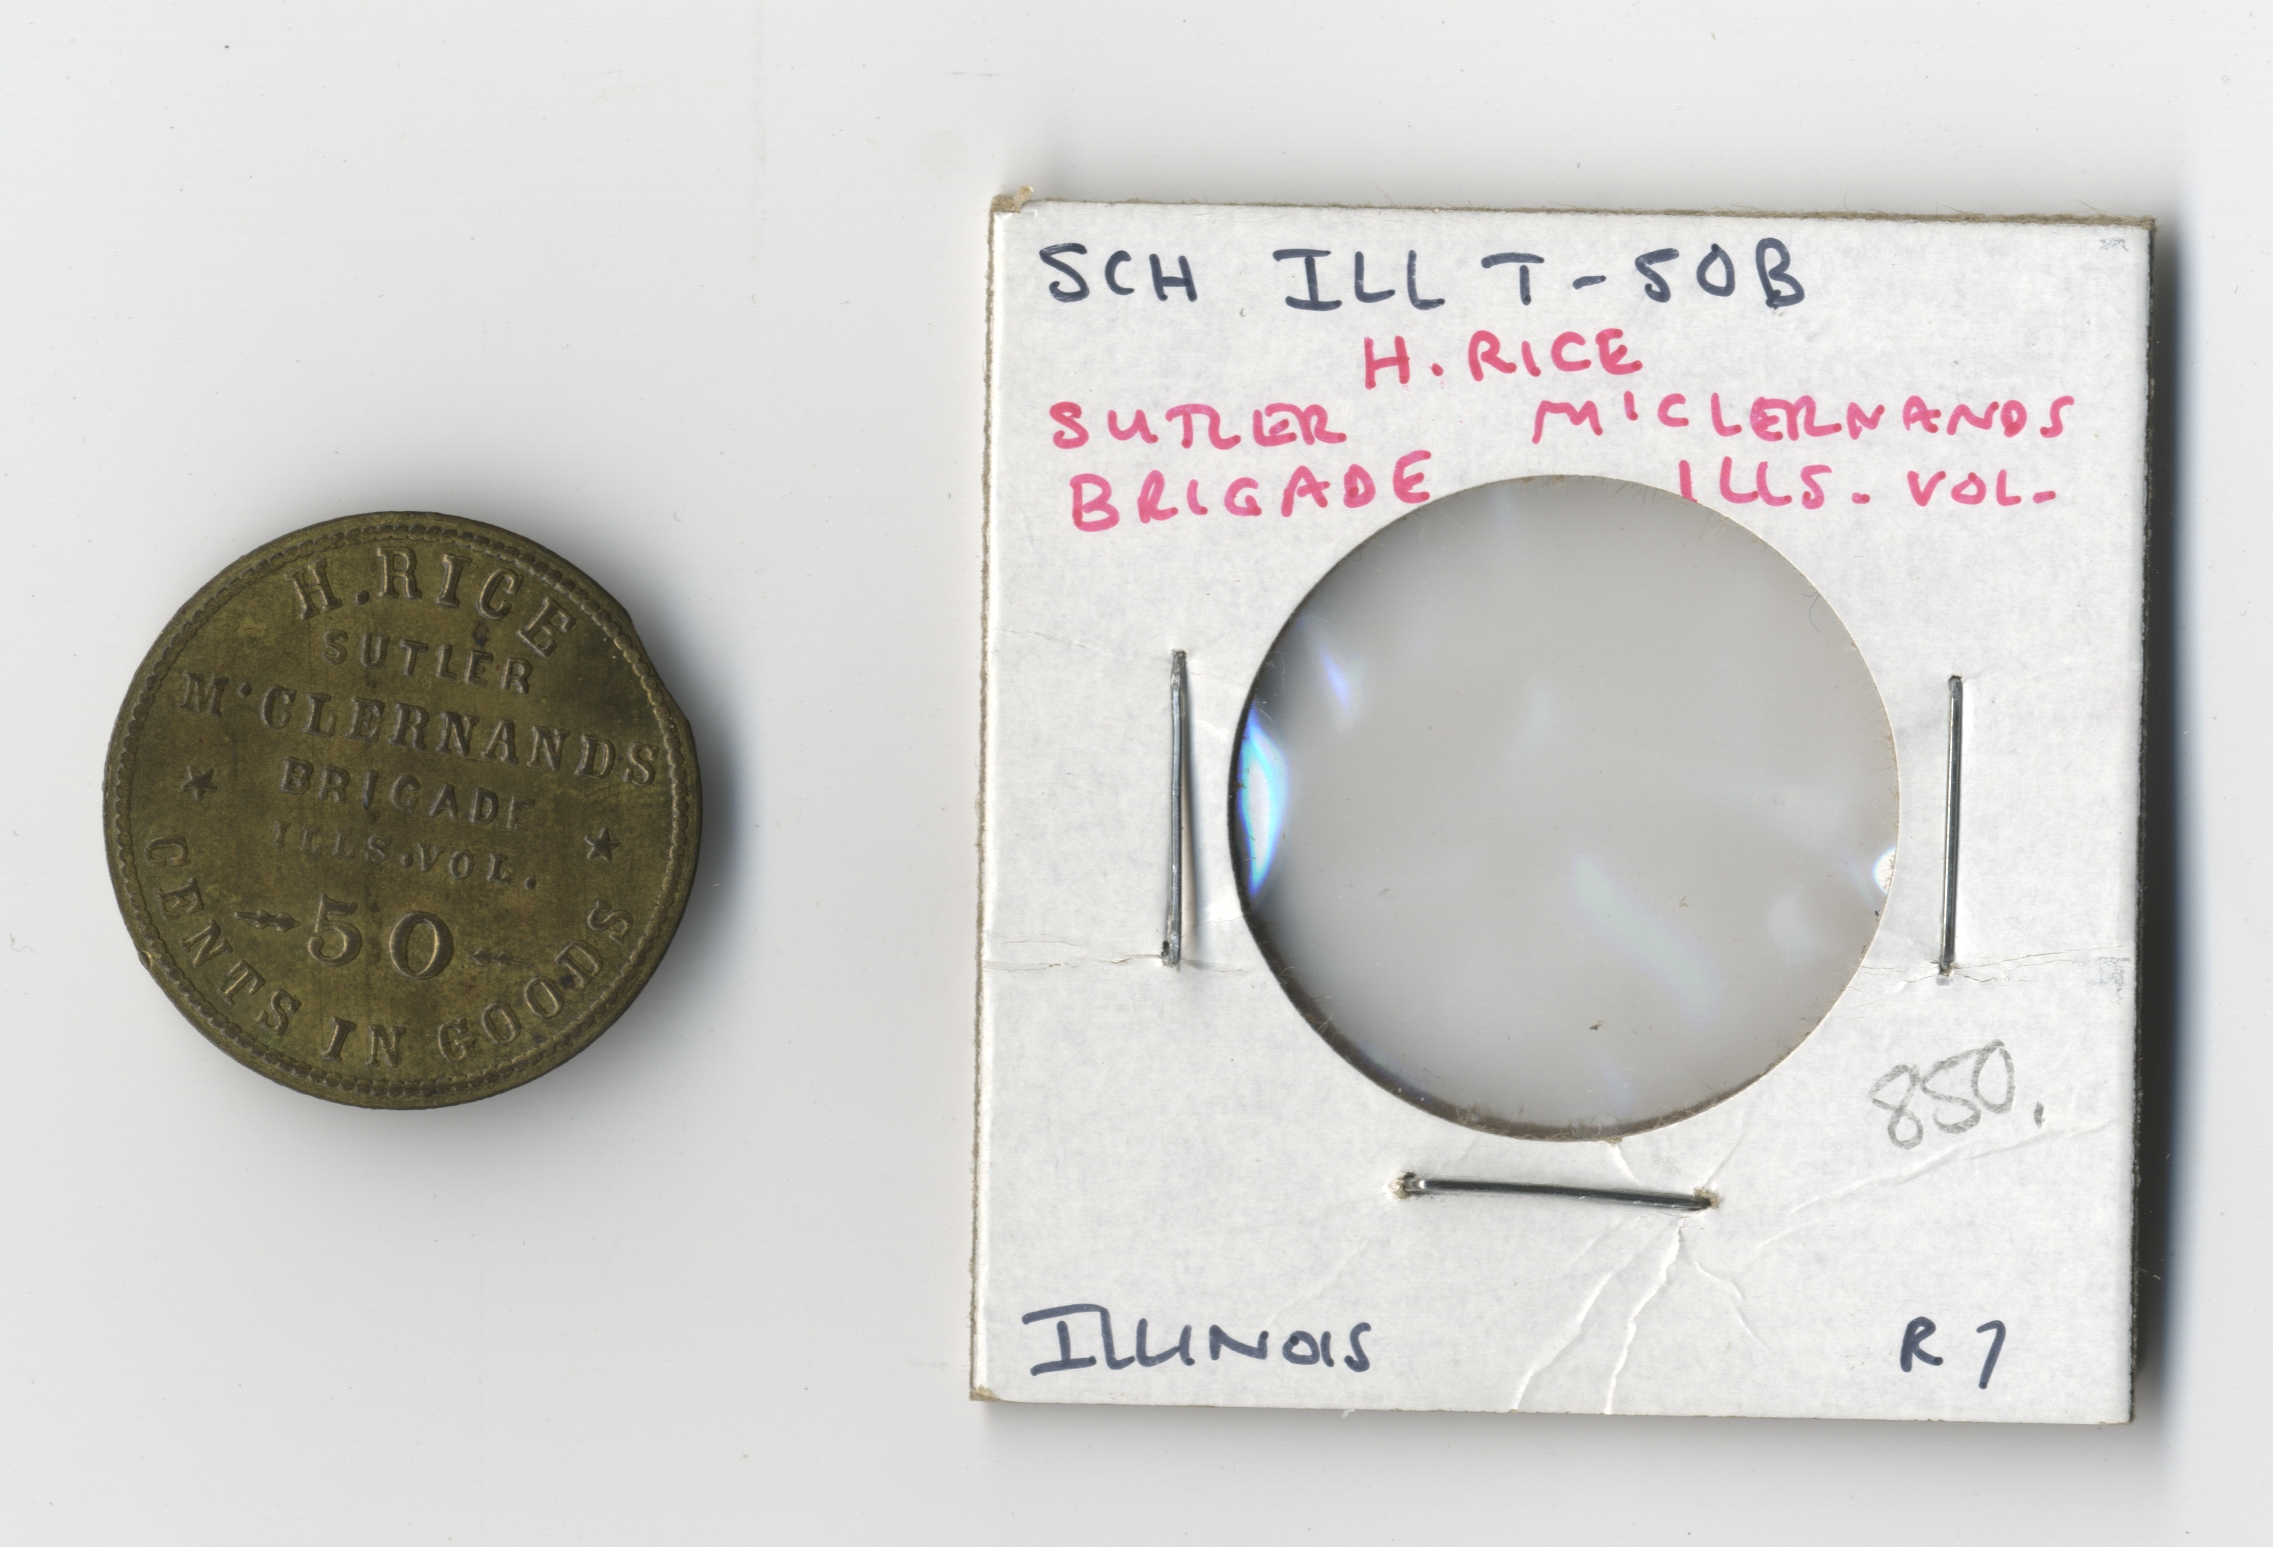 50 Cent Civil War Sutler Token of Jewish Sutler and Abraham Lincoln Friend, Henry Rice